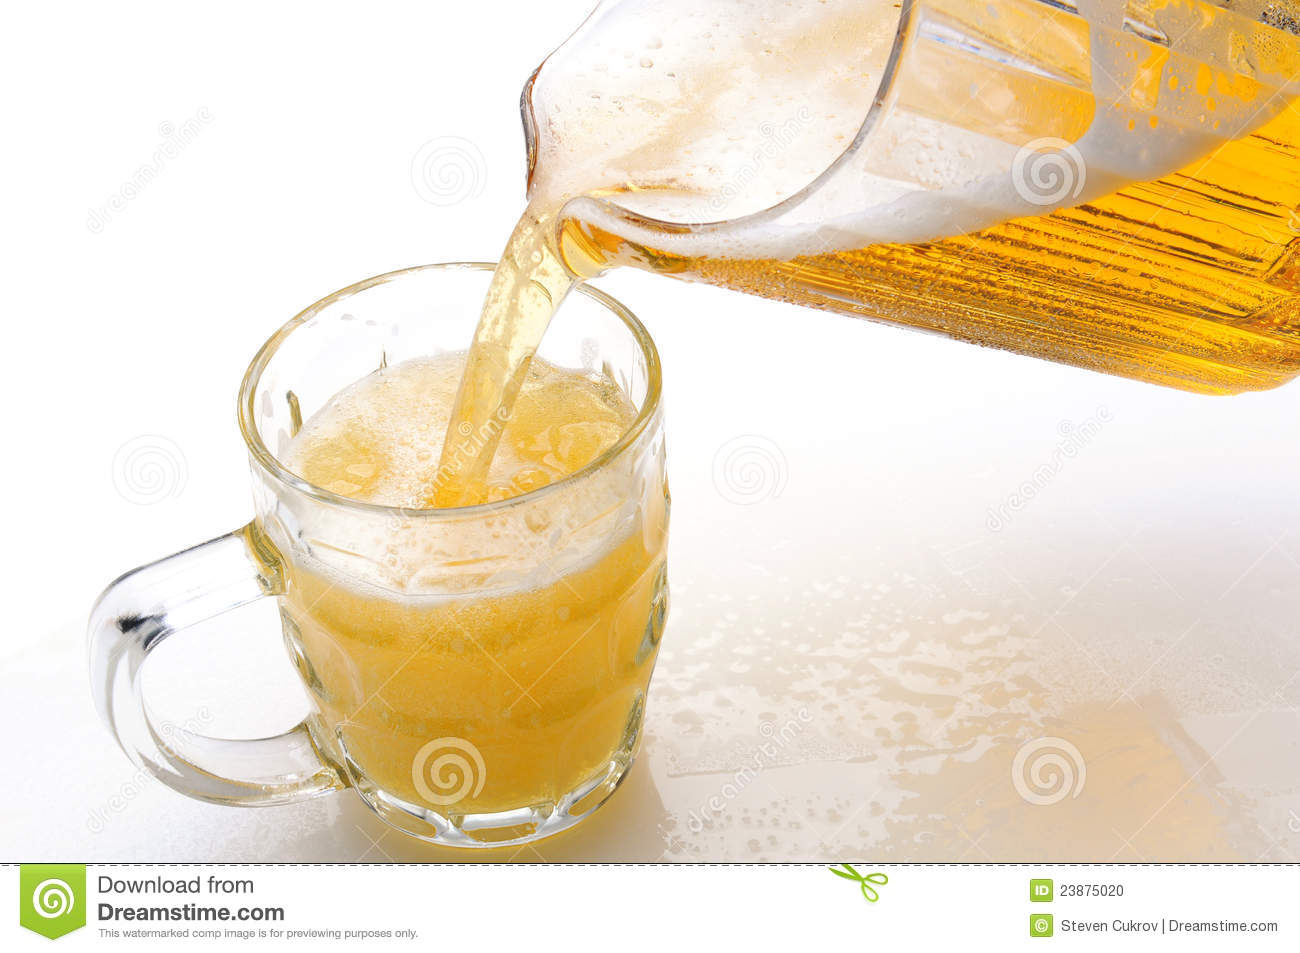 Beer Pouring into Mug from Pitcher